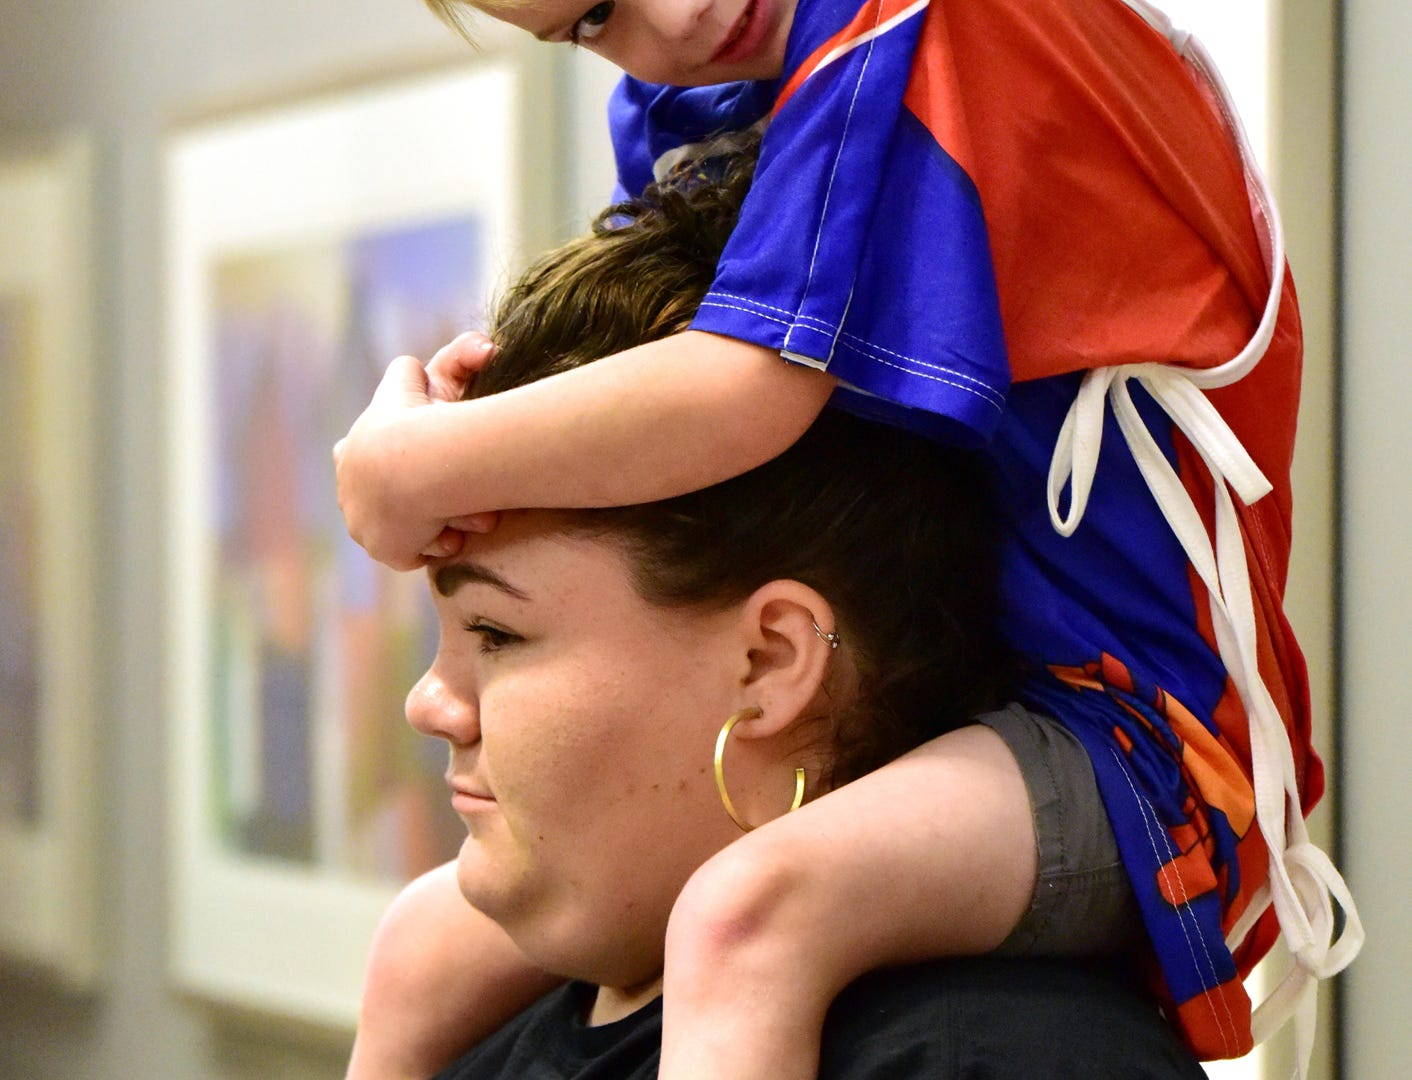 Carson Bradley, 5, sits on the shoulders of Haley Mackey during a Superhero Kids' Fashion Show held by the Dunkin' Donuts Joy in Childhood Foundation at Greenville Memorial Hospital on Thursday, August 2, 2018.